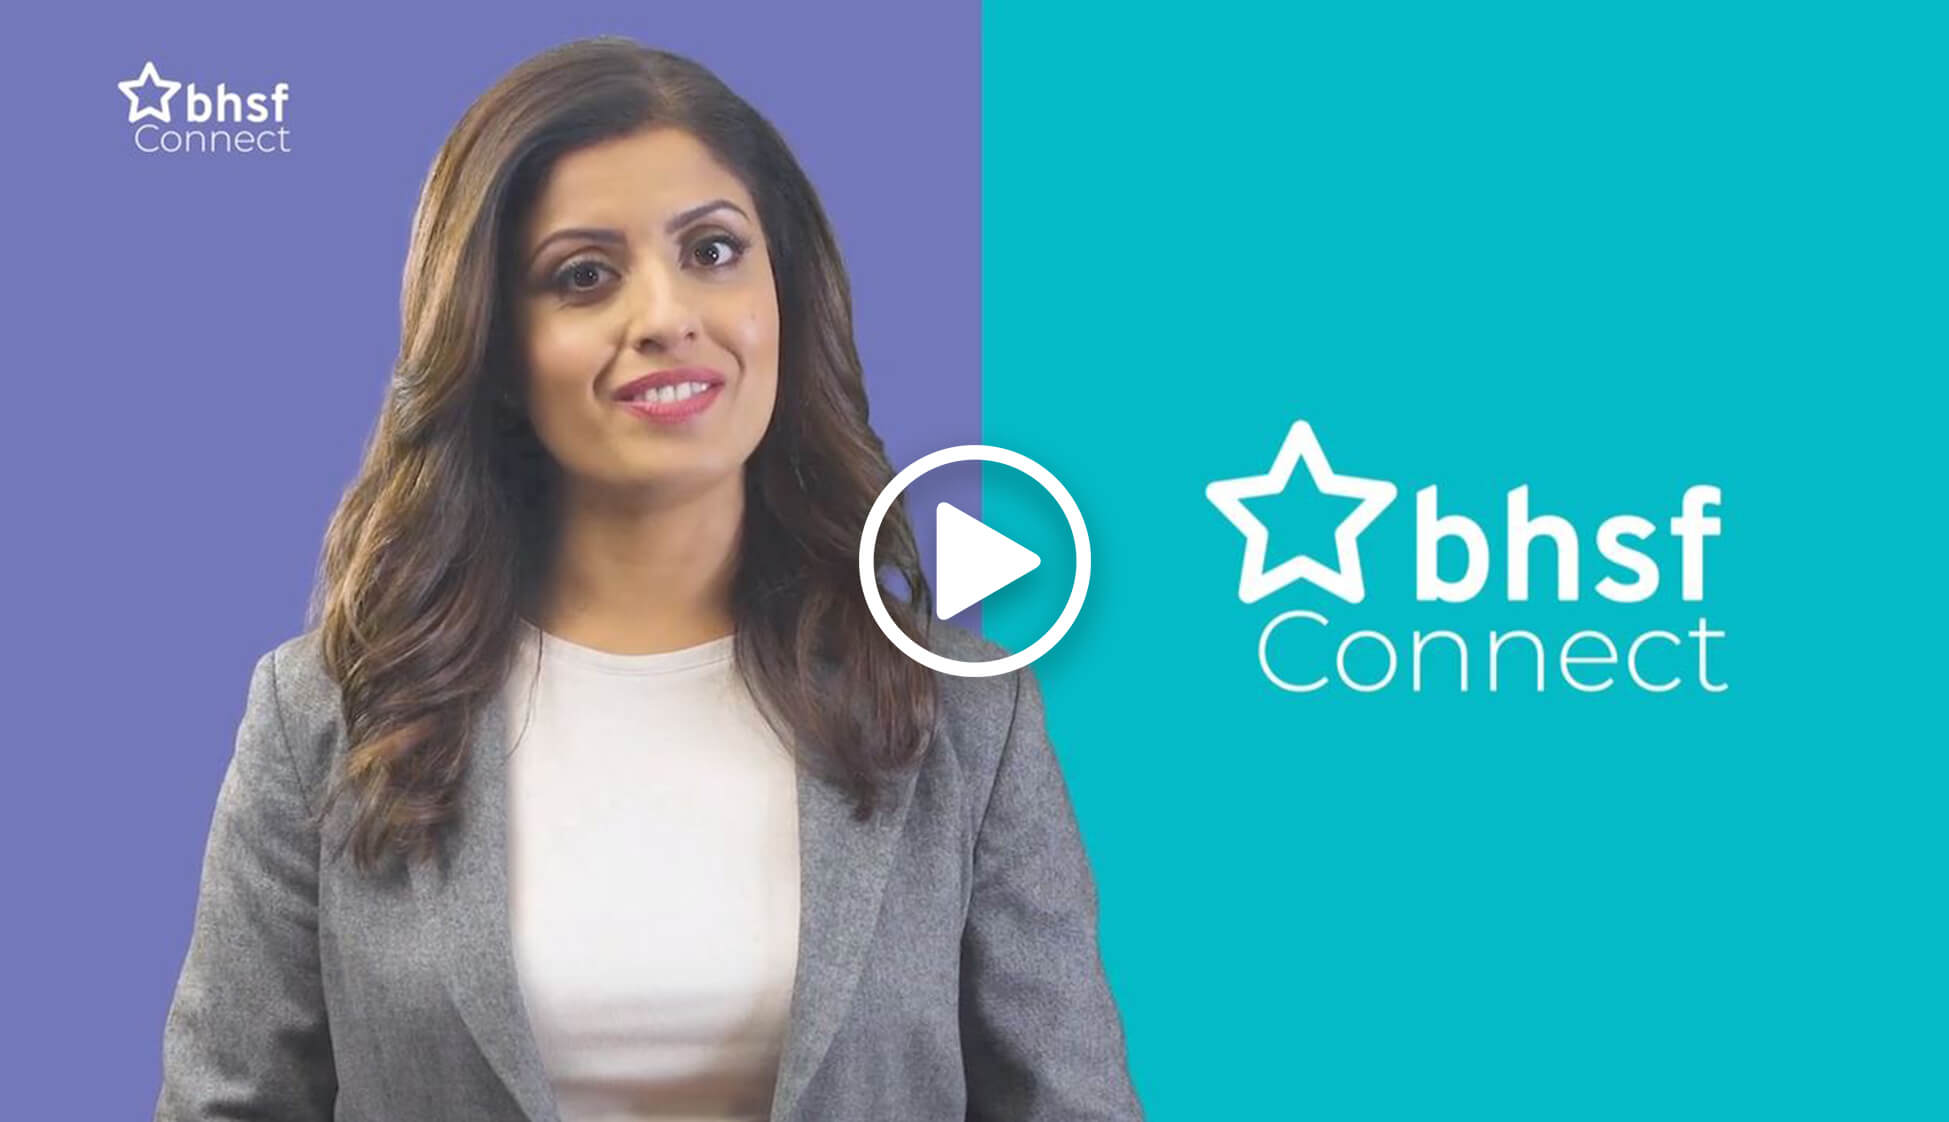 What is BHSF Connect?